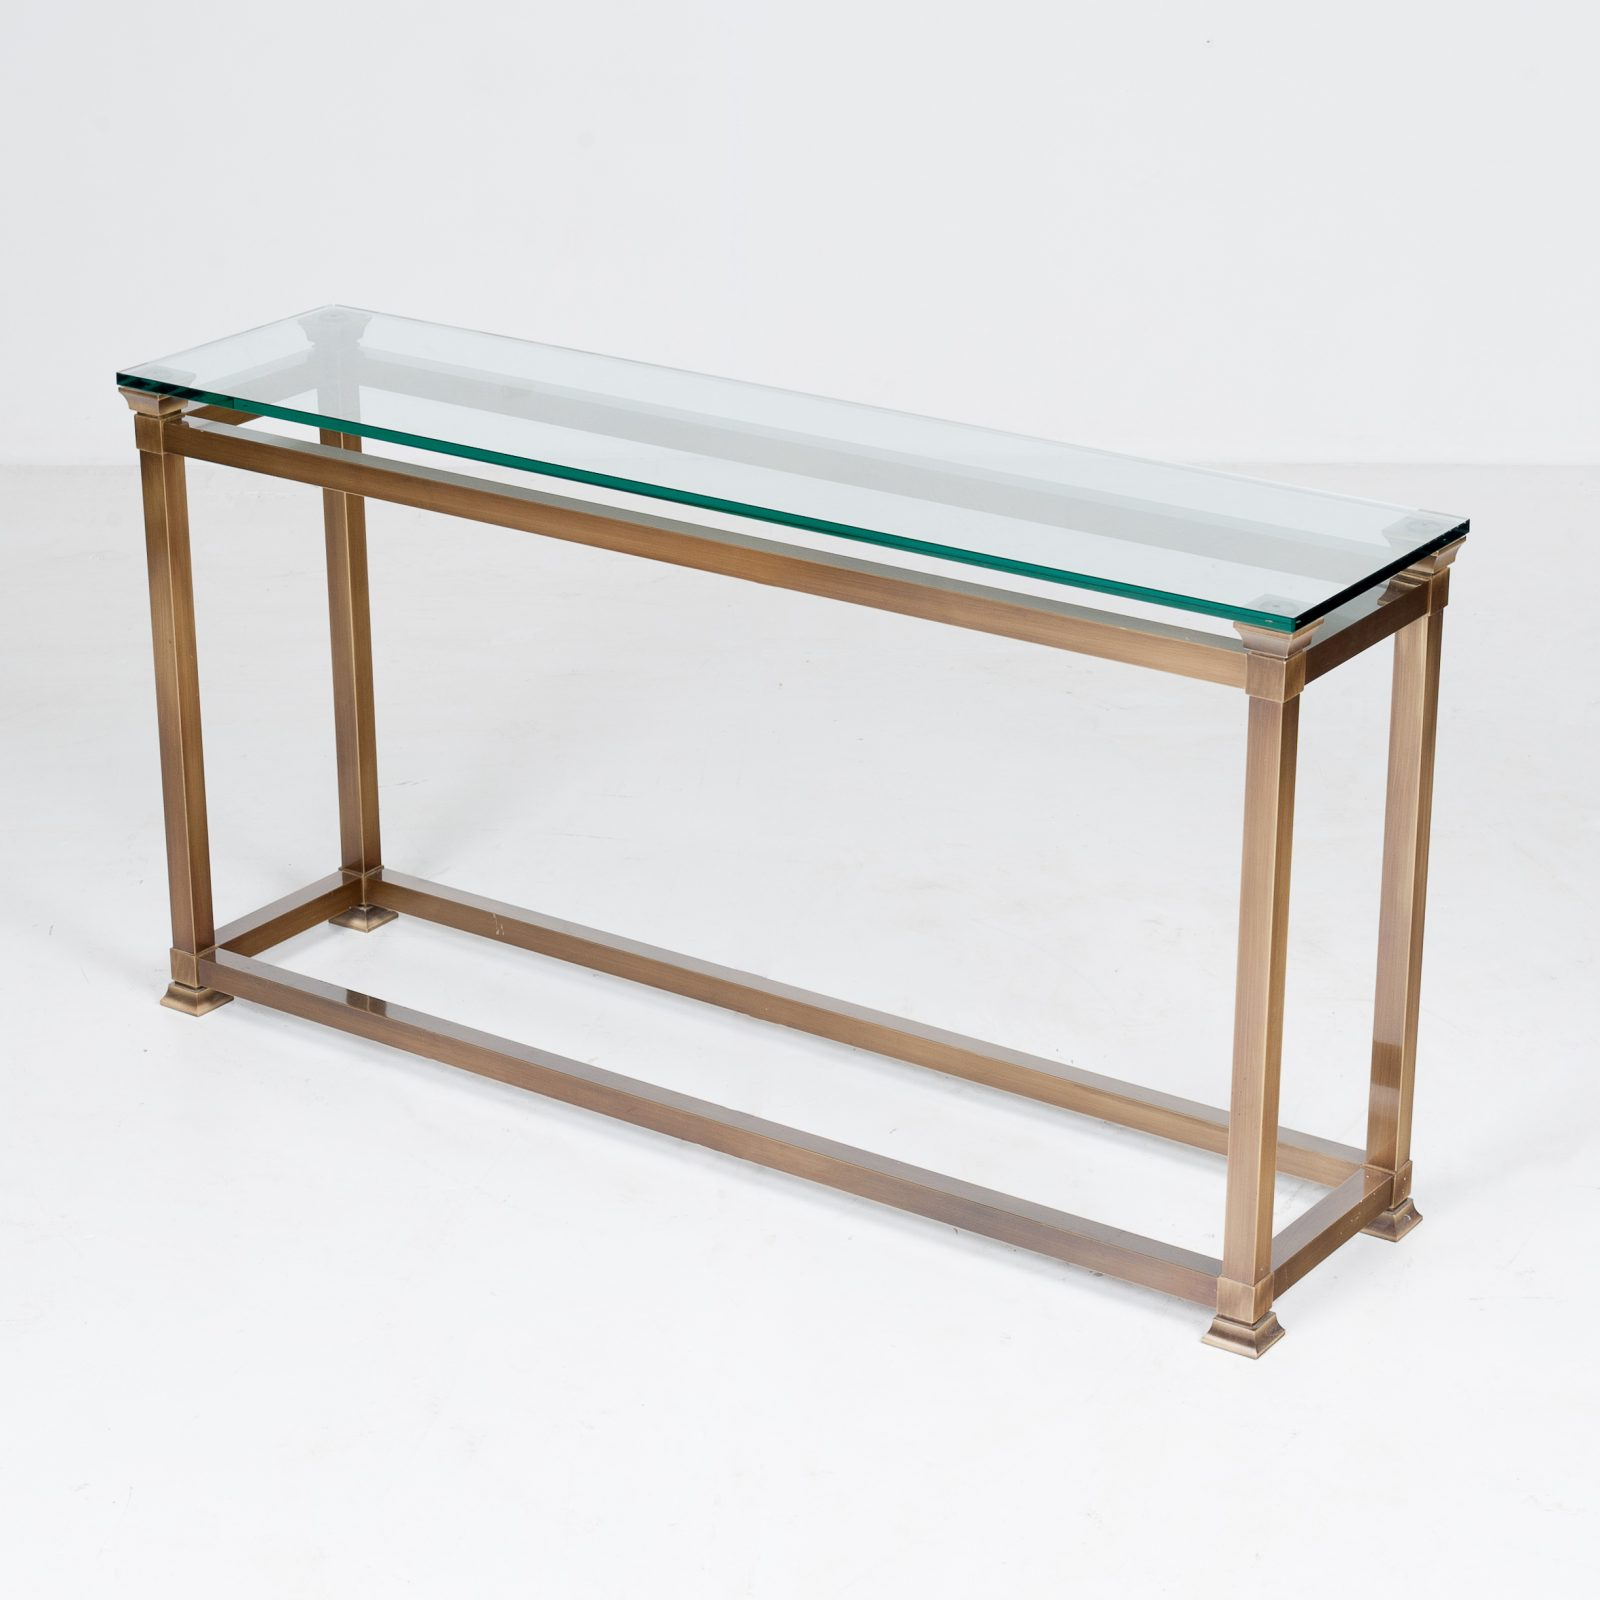 Wall Console In Brass, 1960s, The Netherlands5